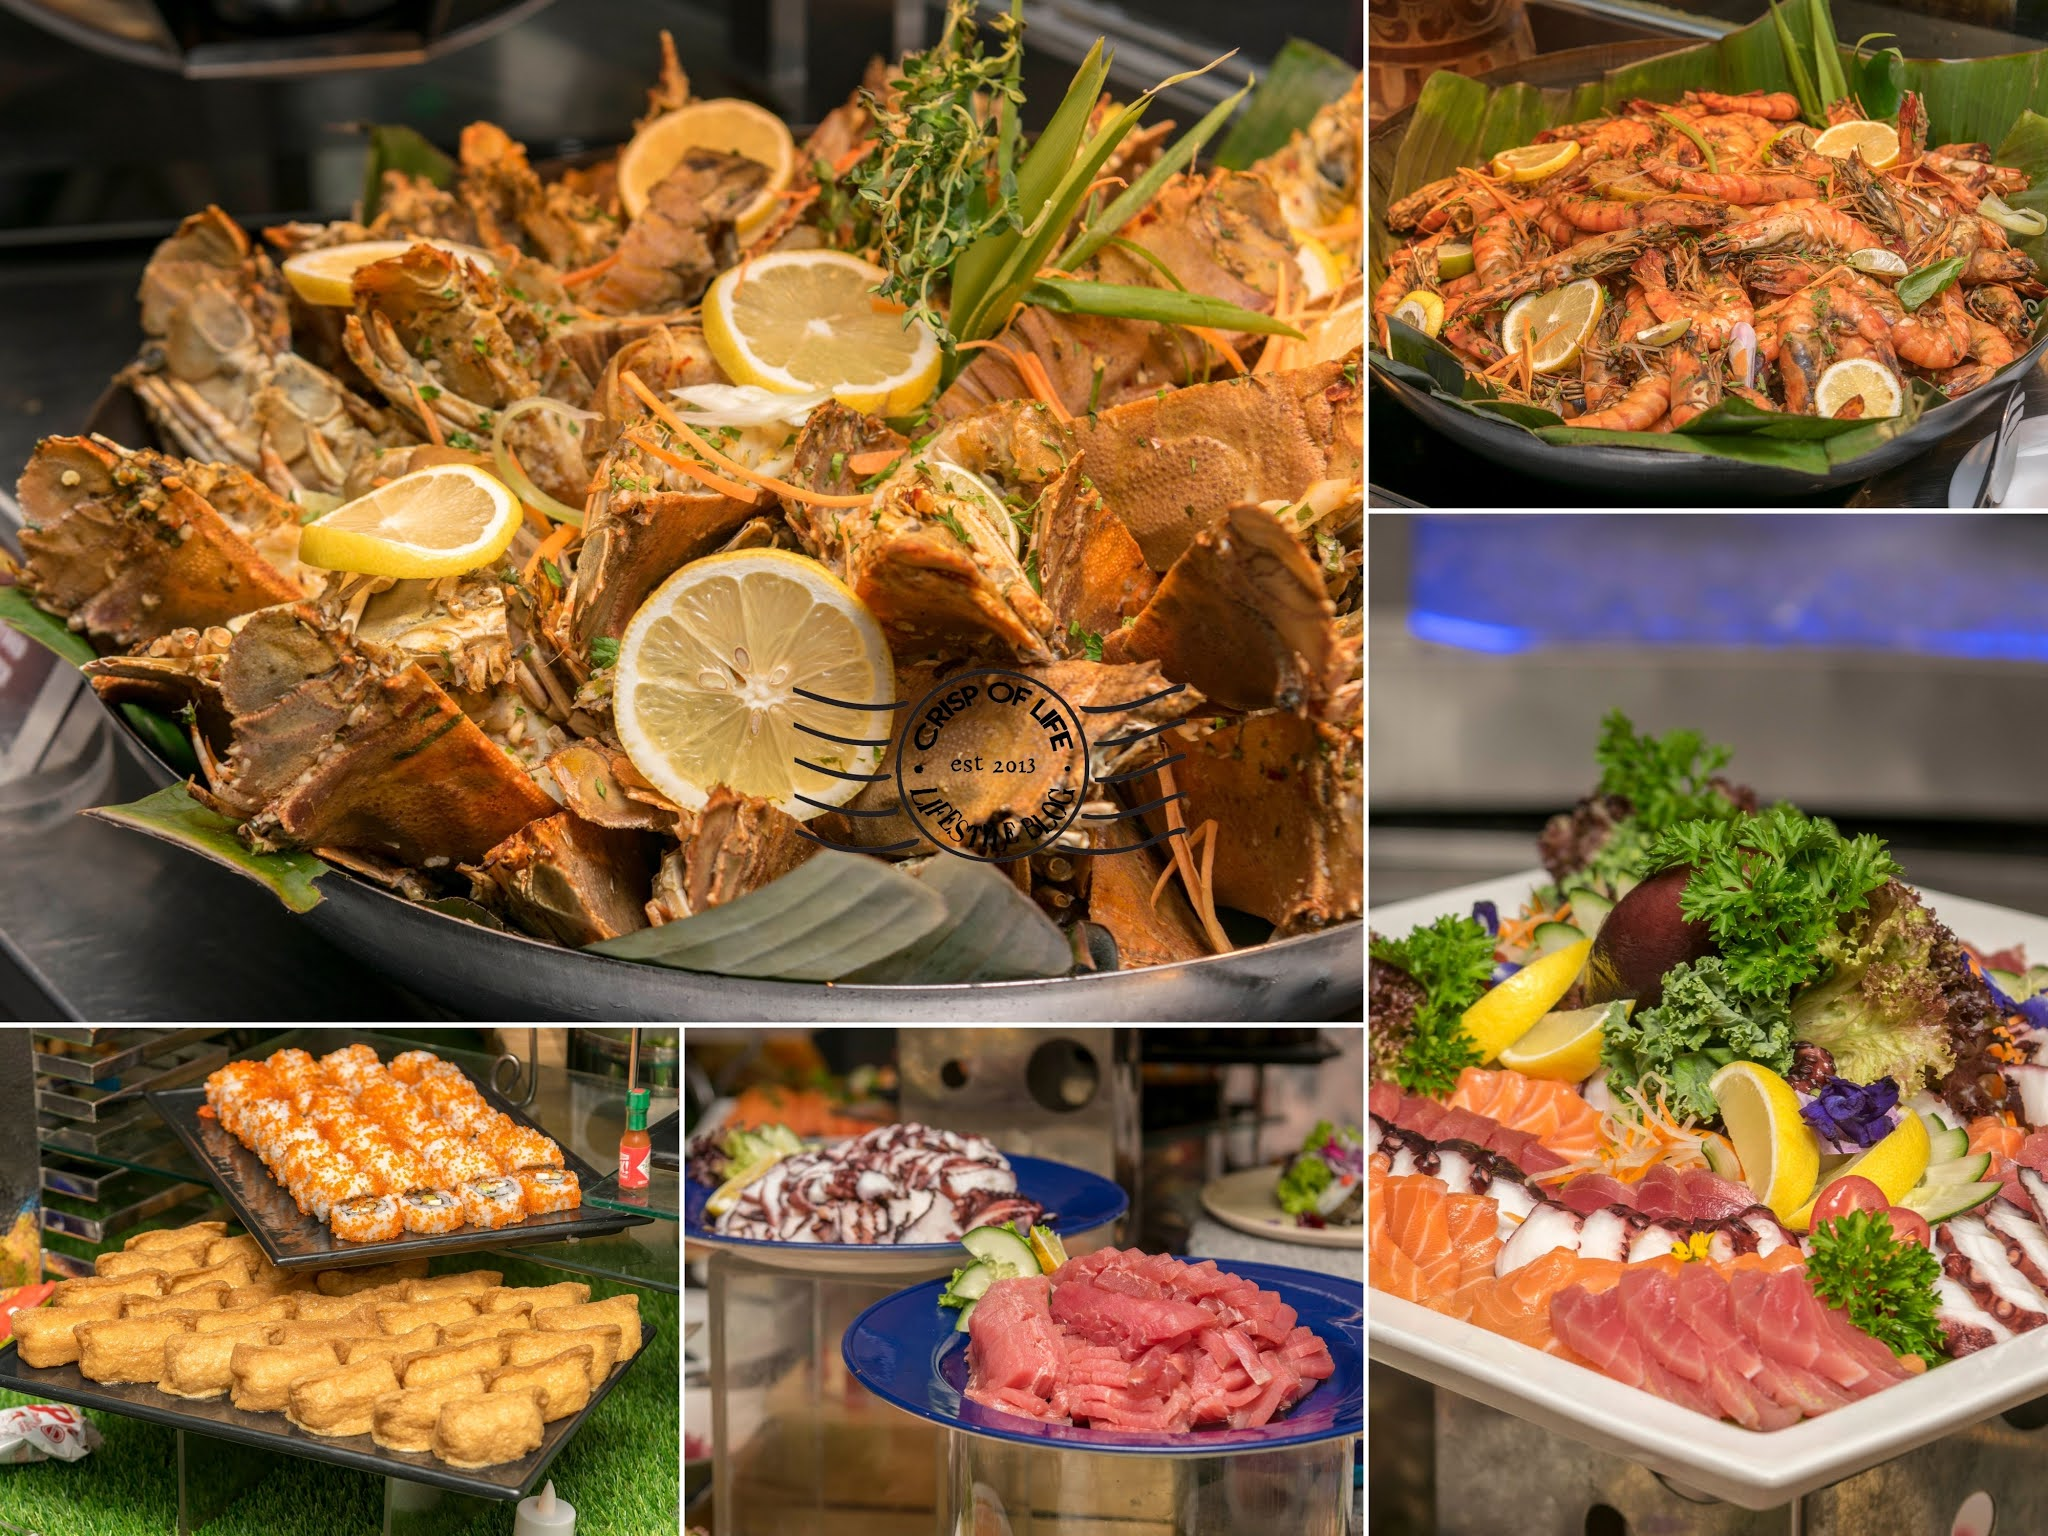 Let's Makan! All-You-Can-Eat Malaysian Dinner @ Hard Rock Hotel Penang